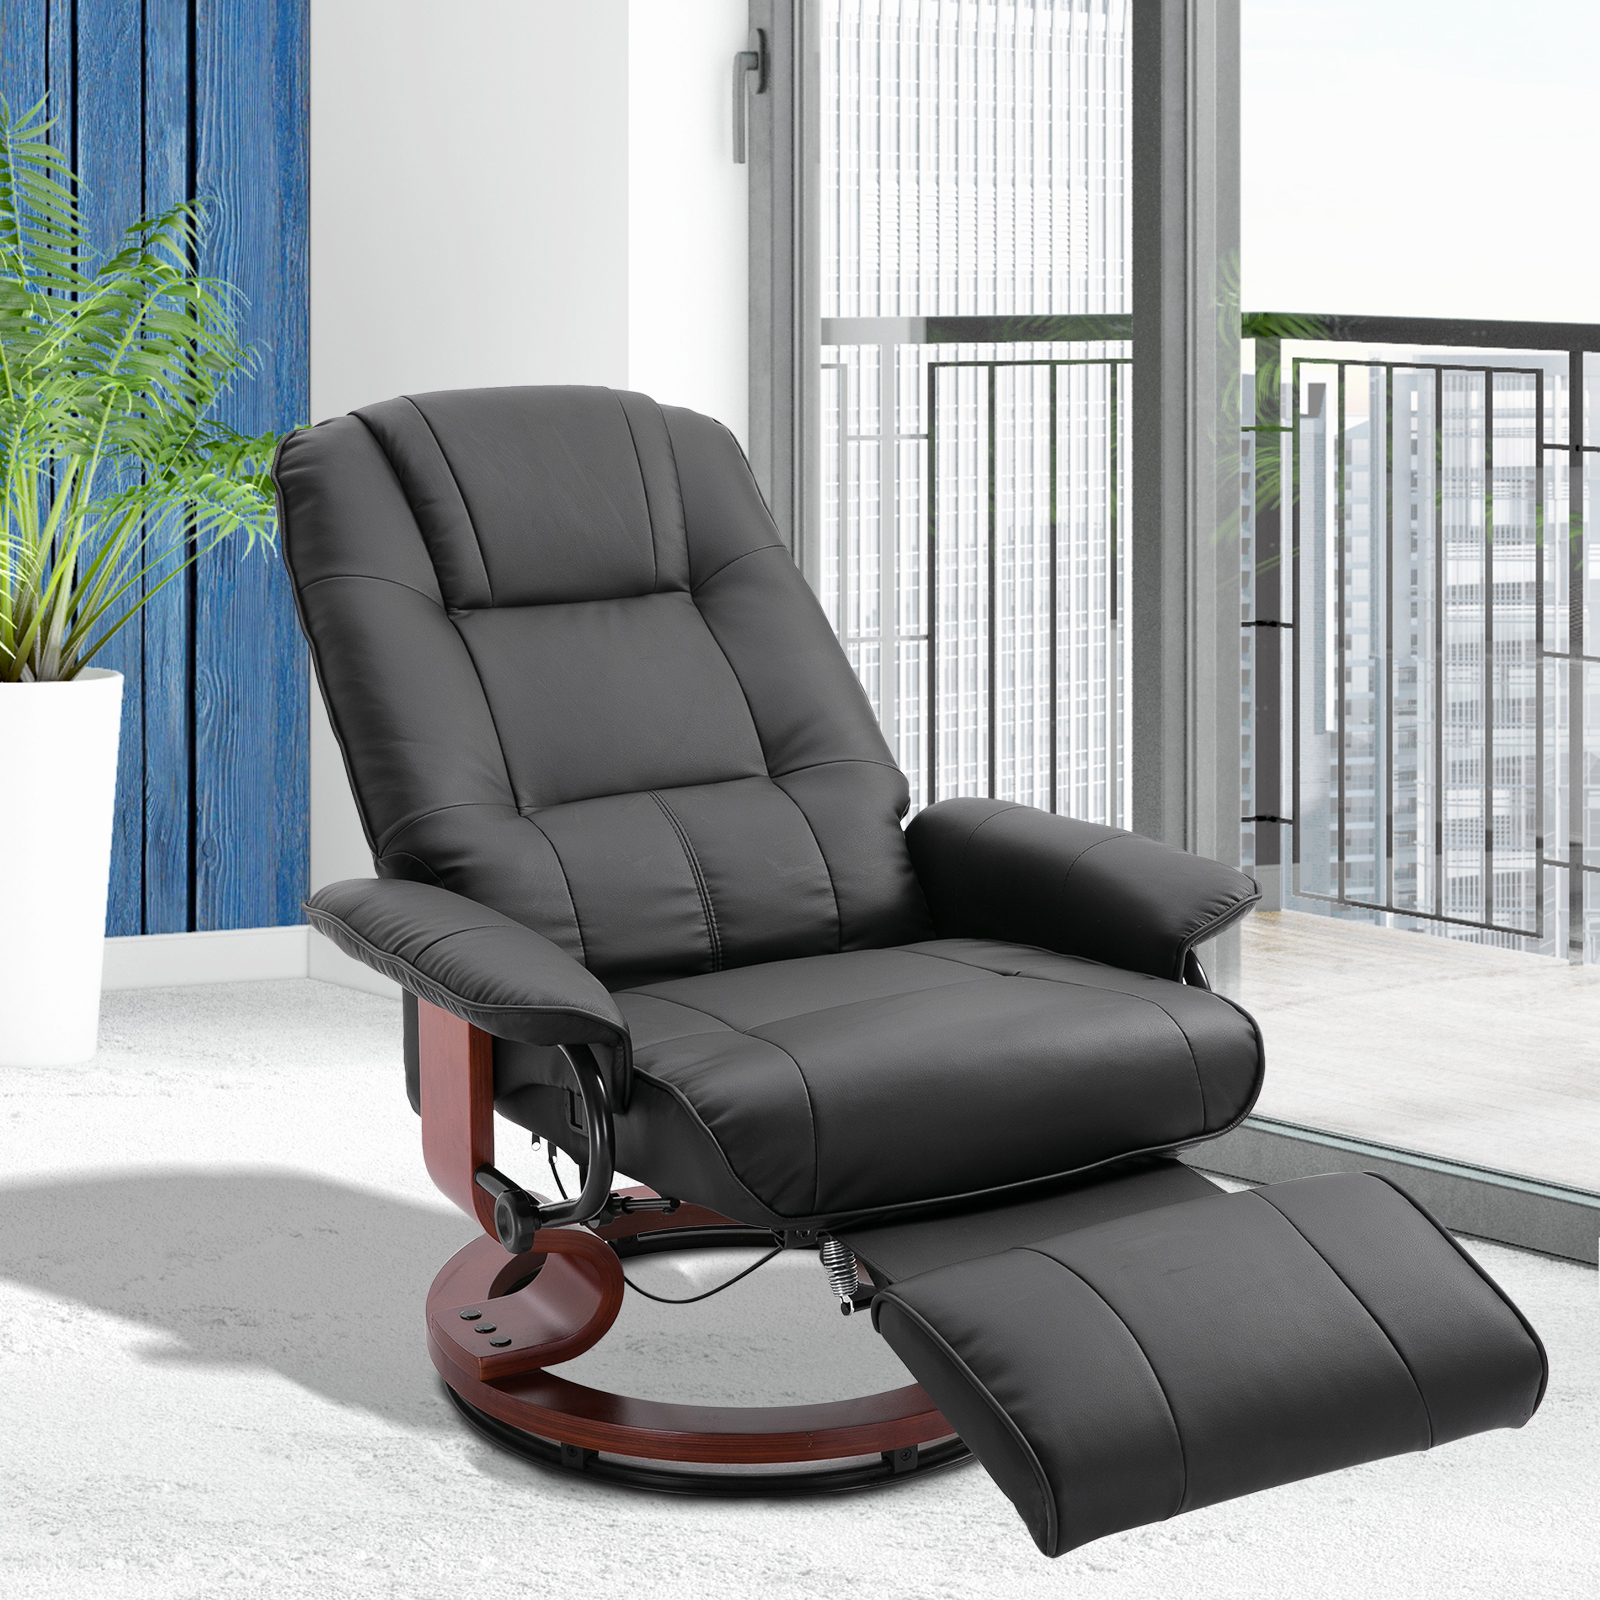 Faux Leather Adjustable Traditional Manual Swivel Recliner Chair Ottoman Black 842525131049 Ebay